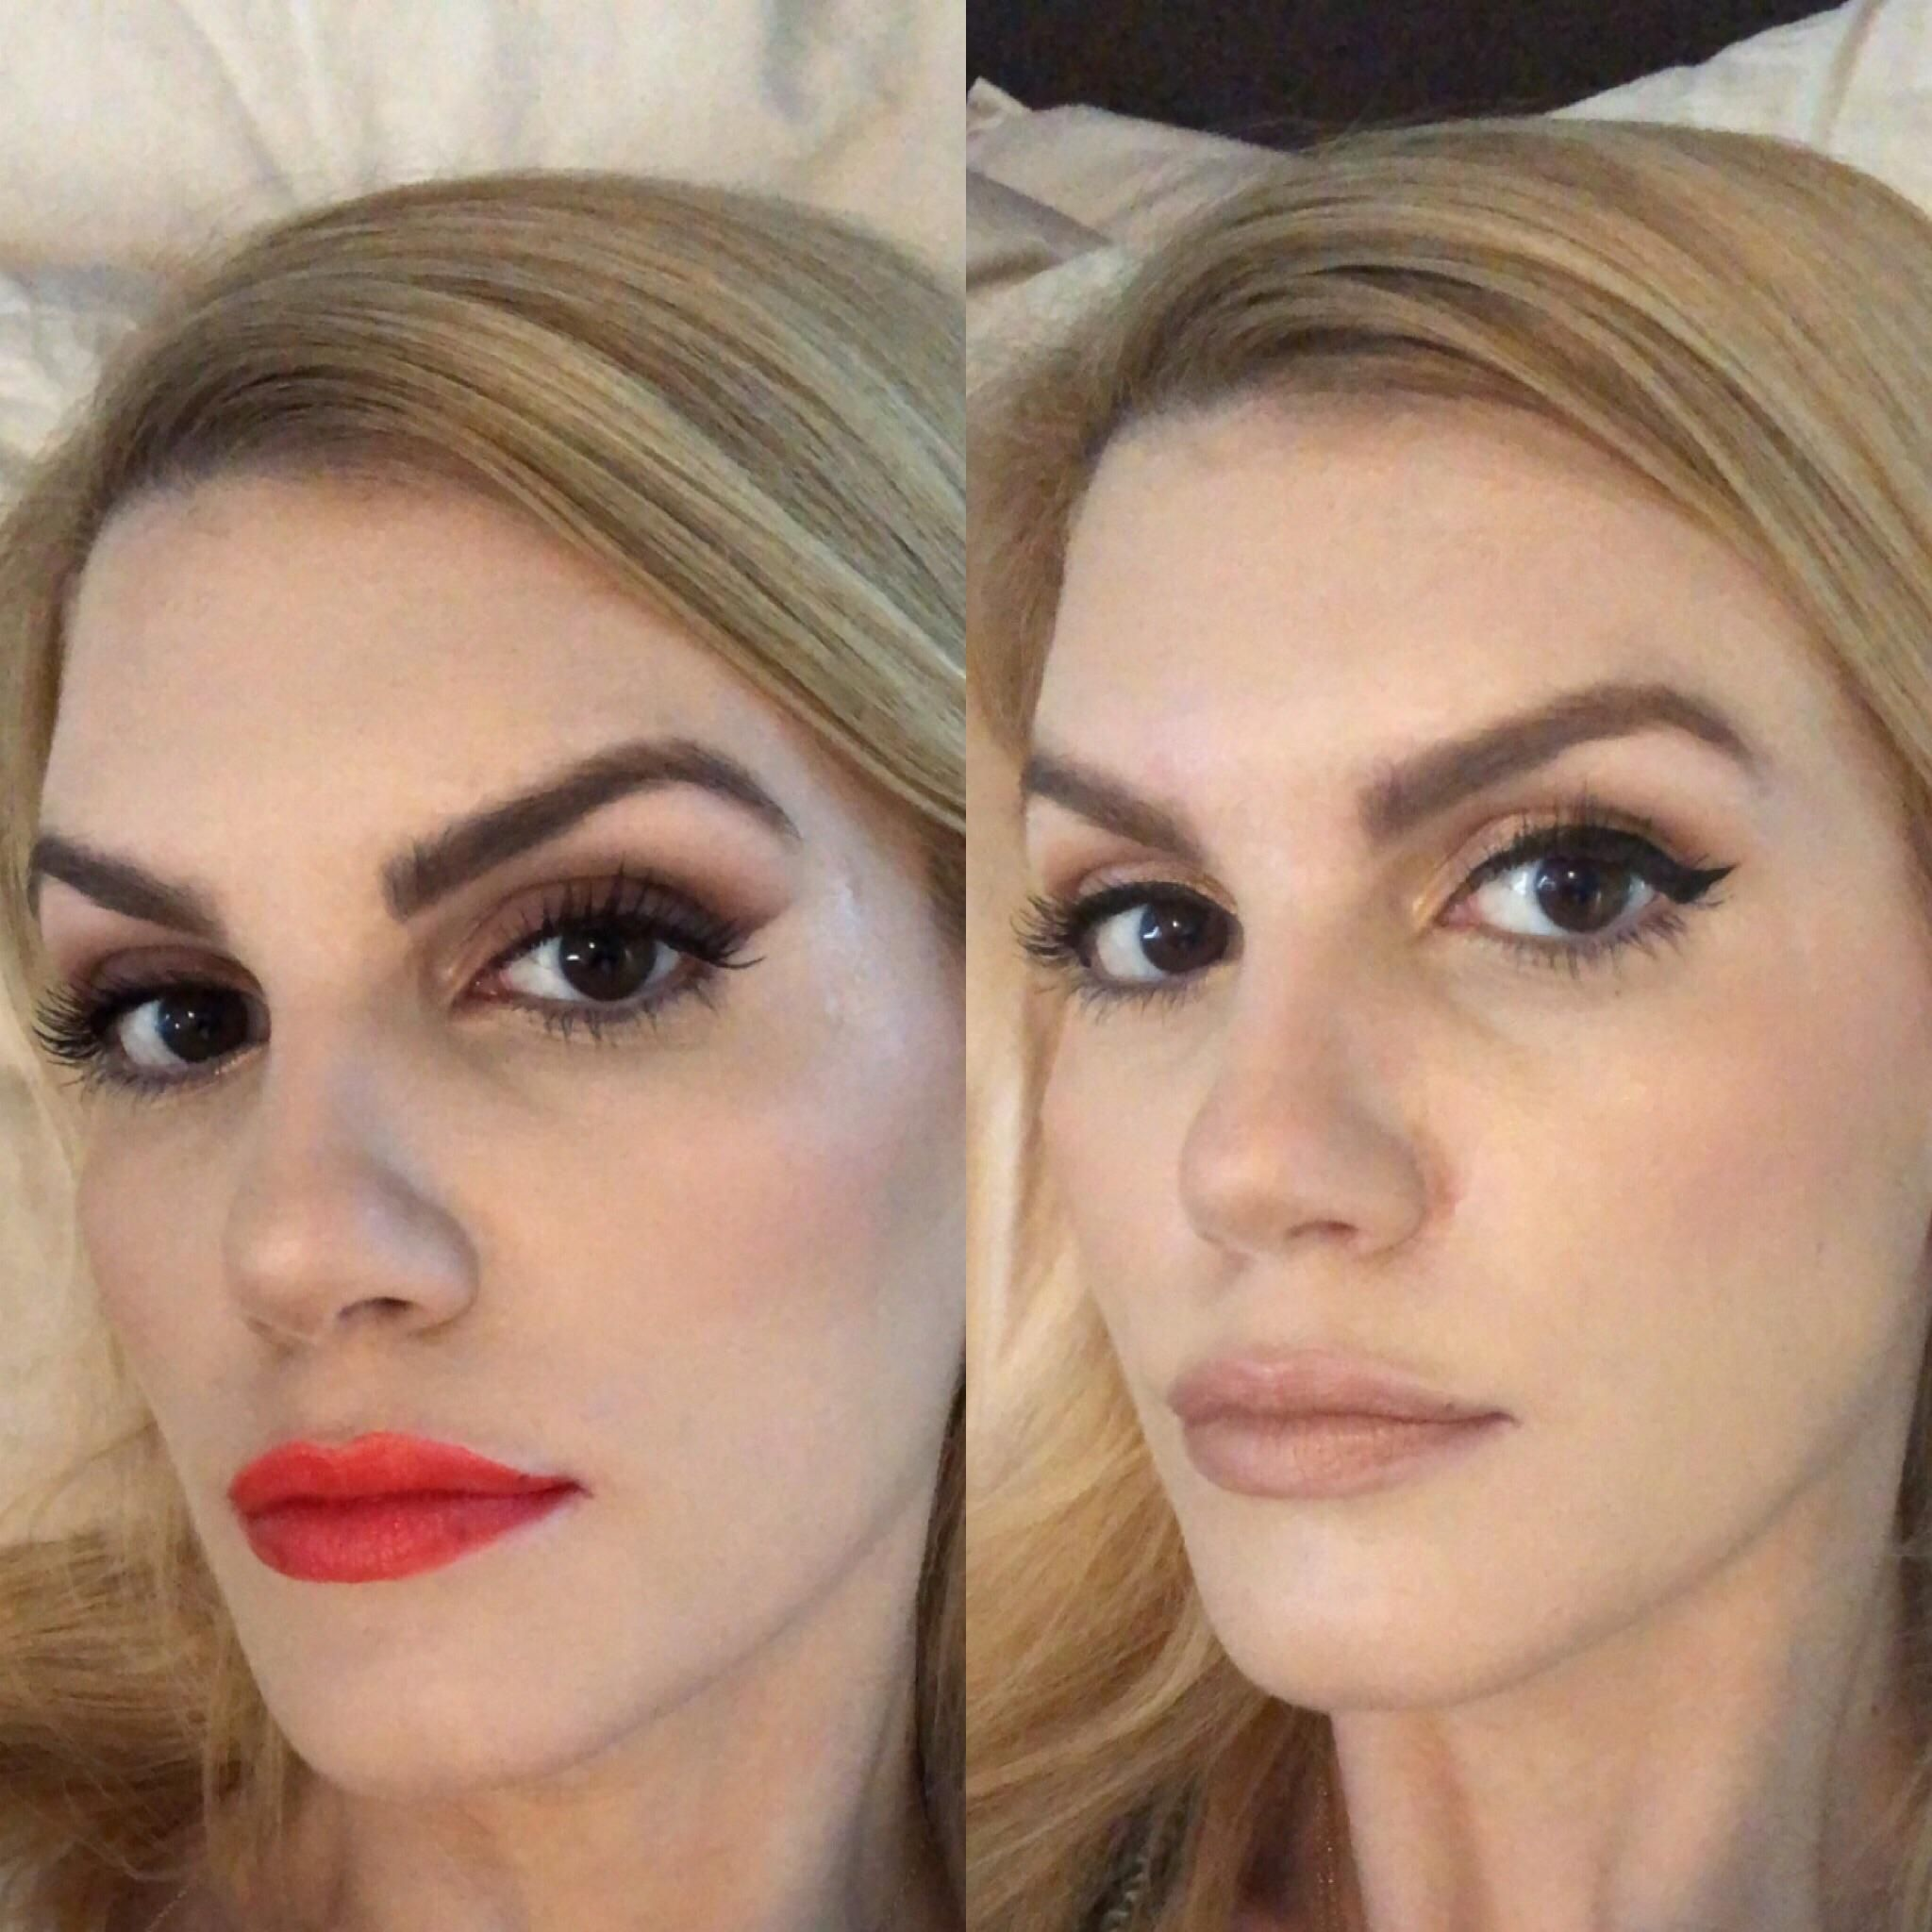 Eyebrow Lightening Before And After Light Eyebrows Eyebrows How To Lighten Hair